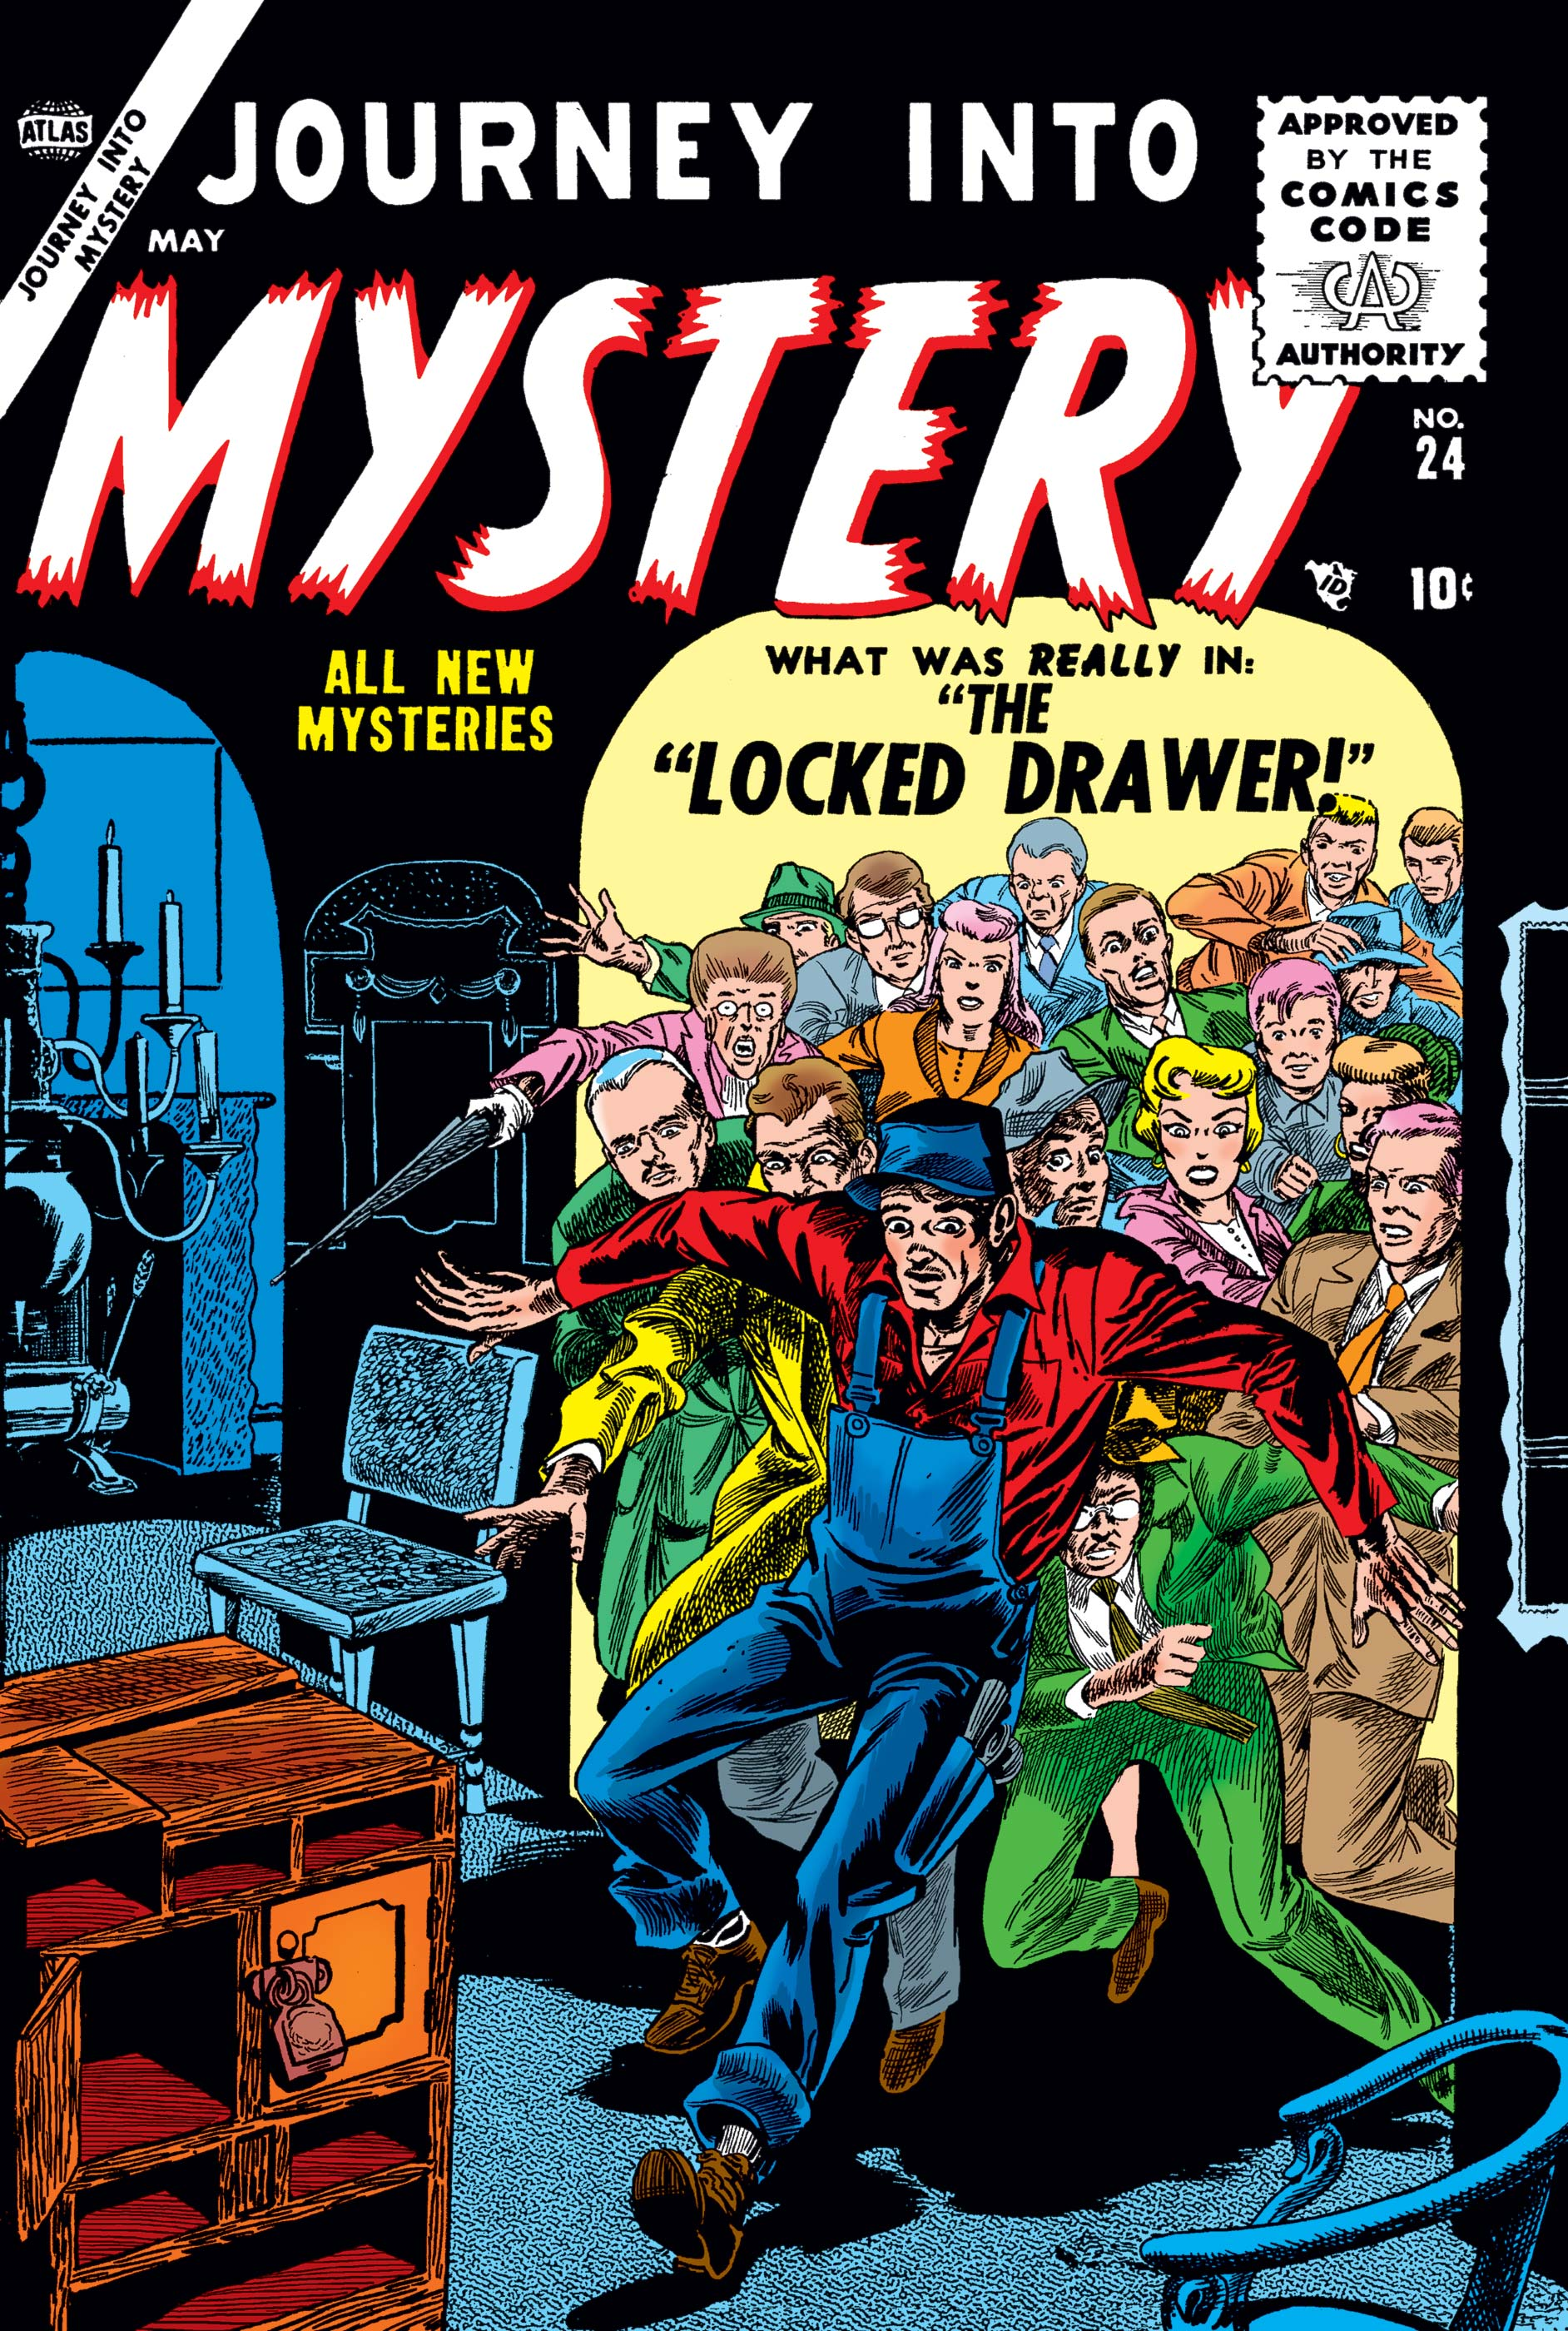 Journey Into Mystery (1952) #24